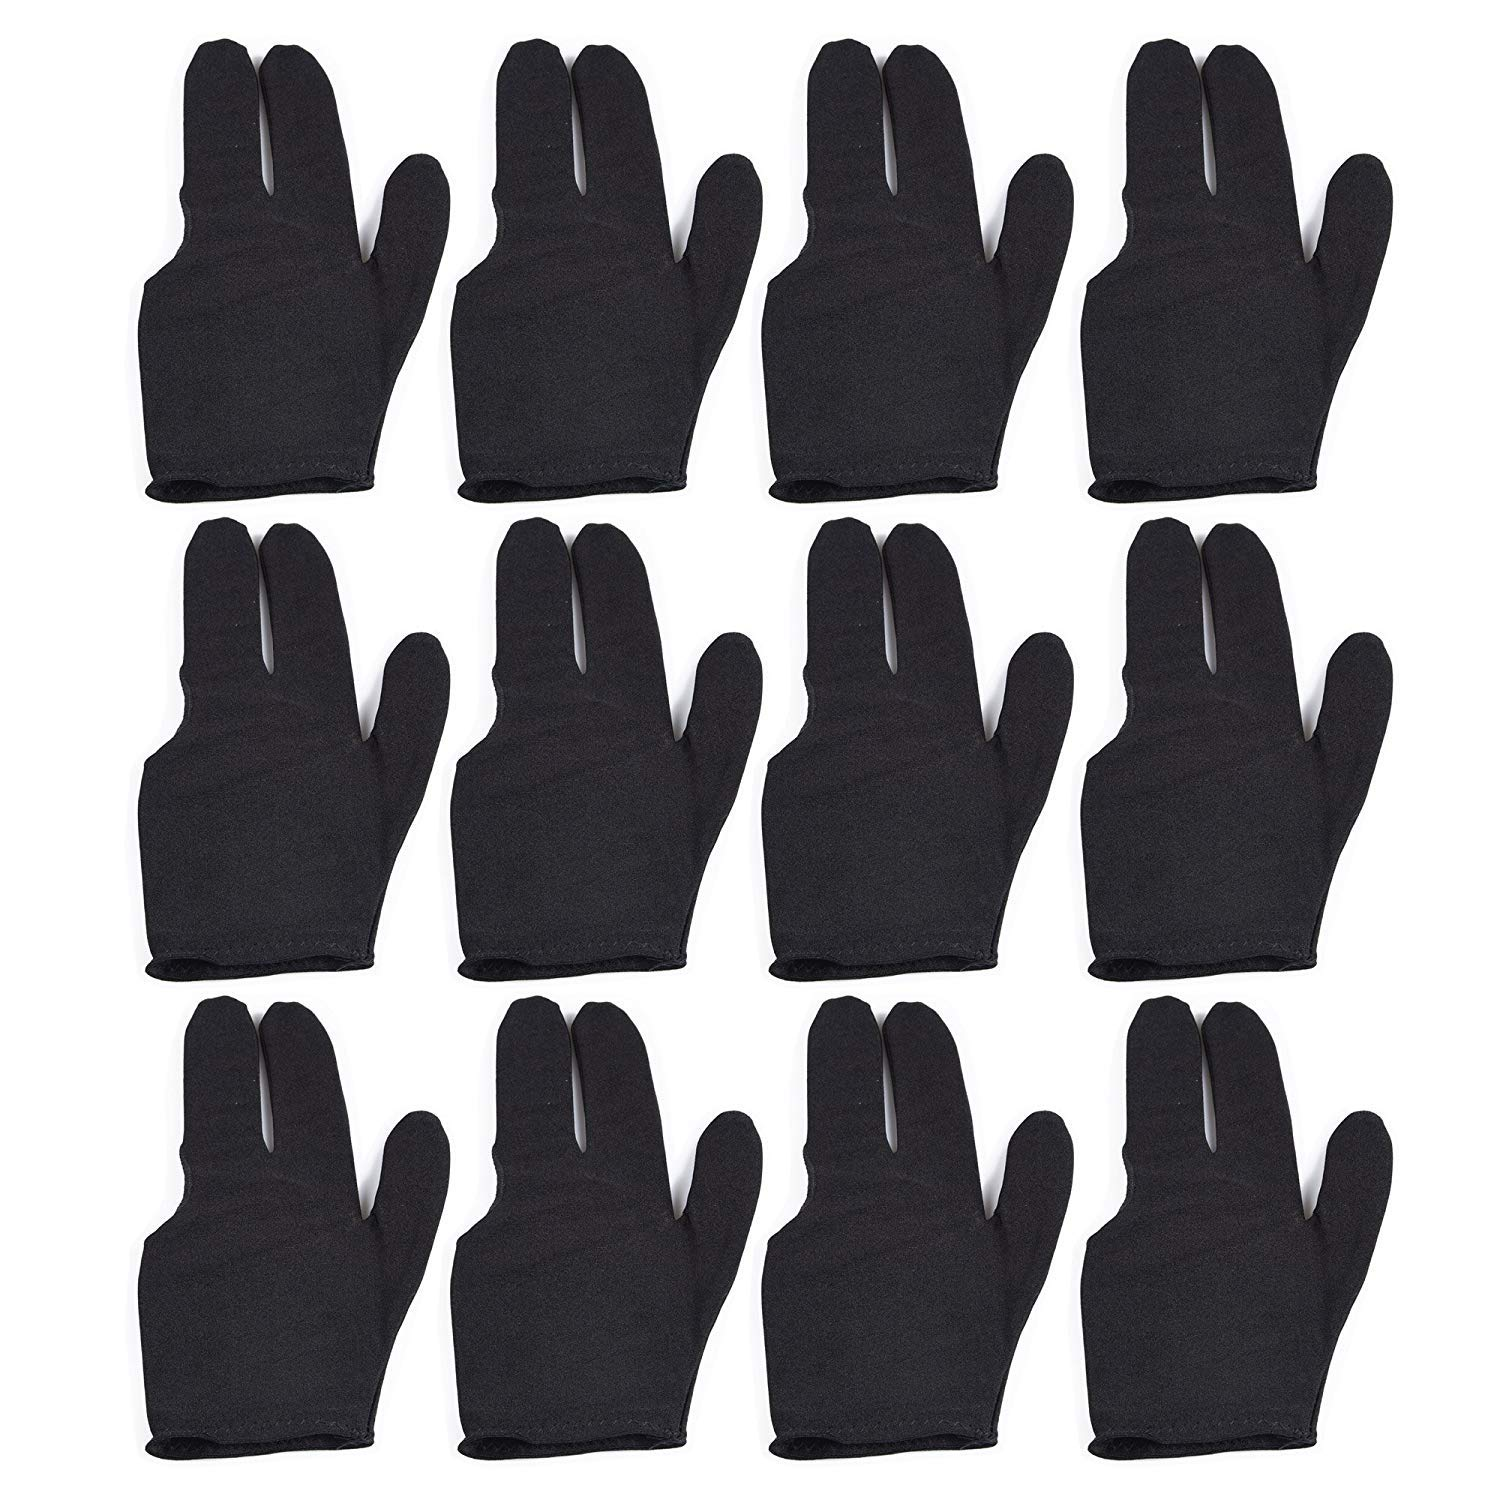 LLJ Billiards Finger Billiard Gloves